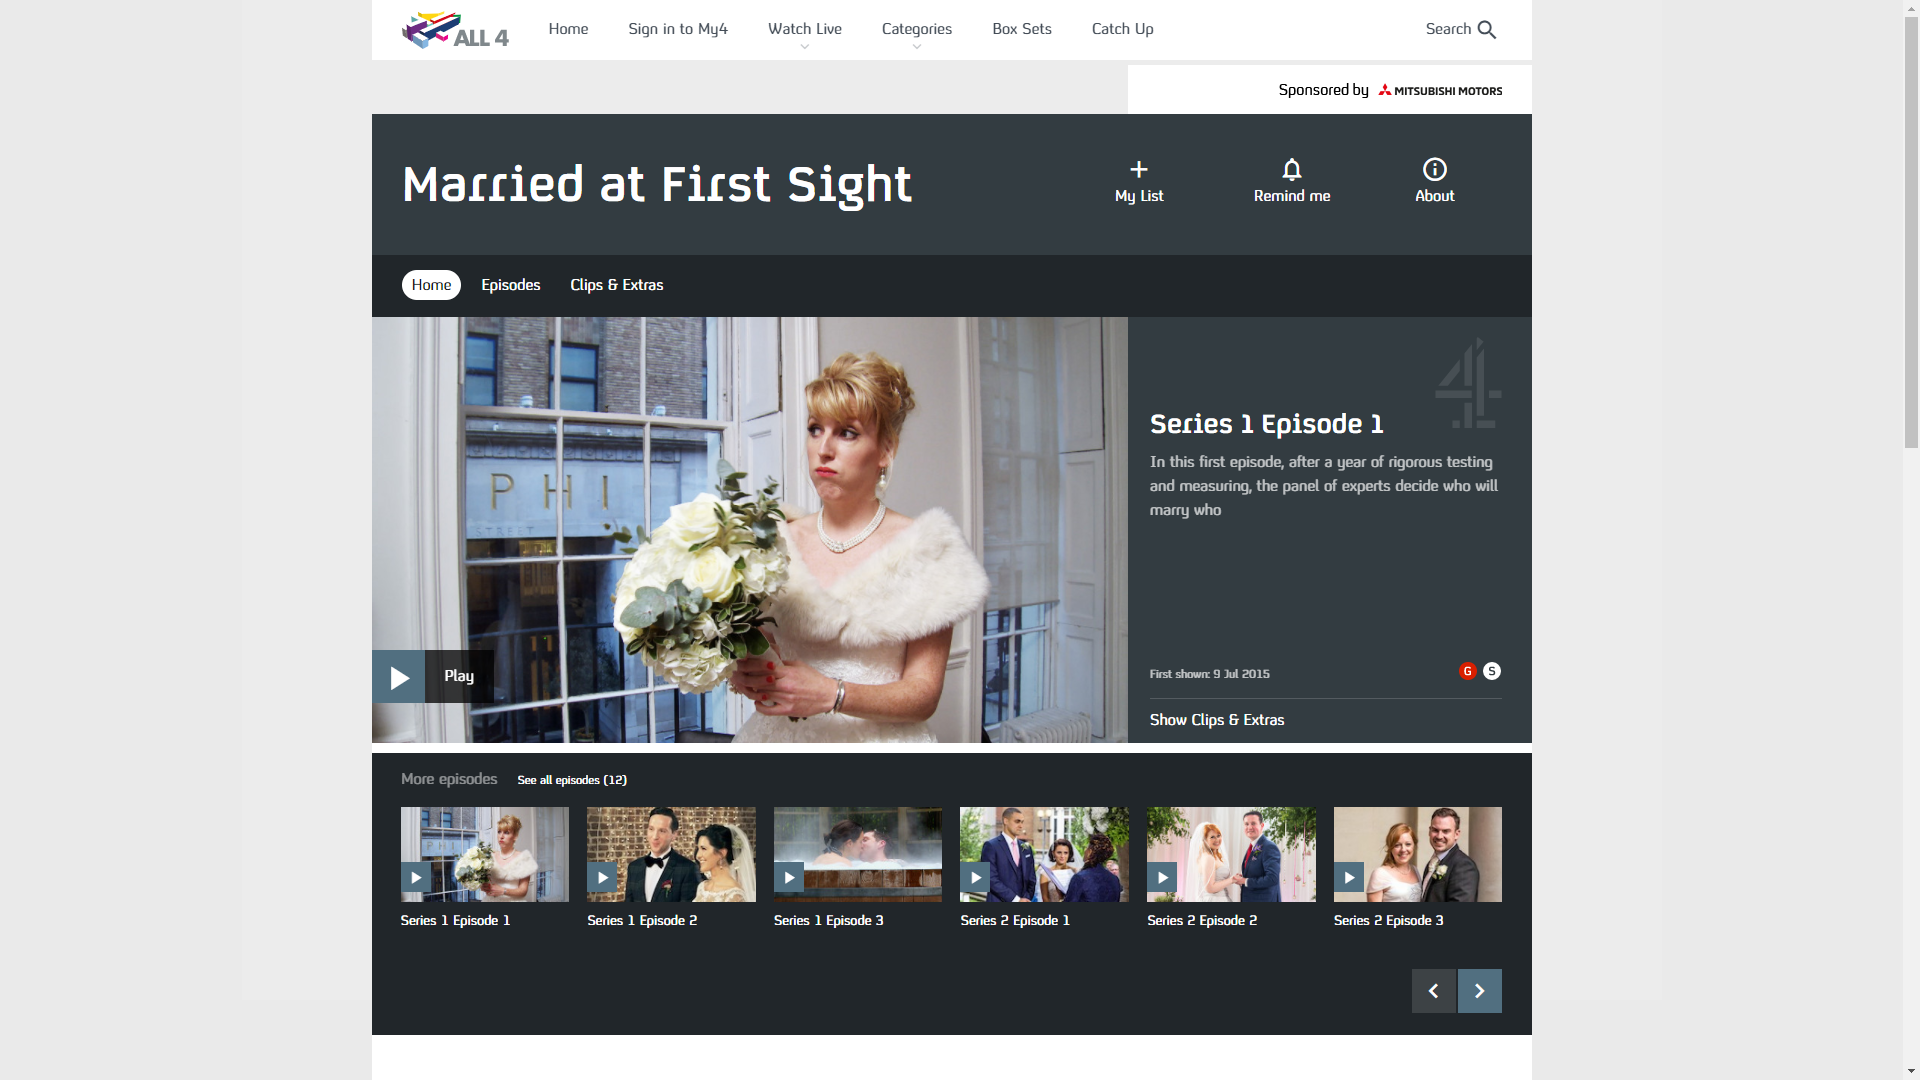 Channel 4 - Married at First Sight